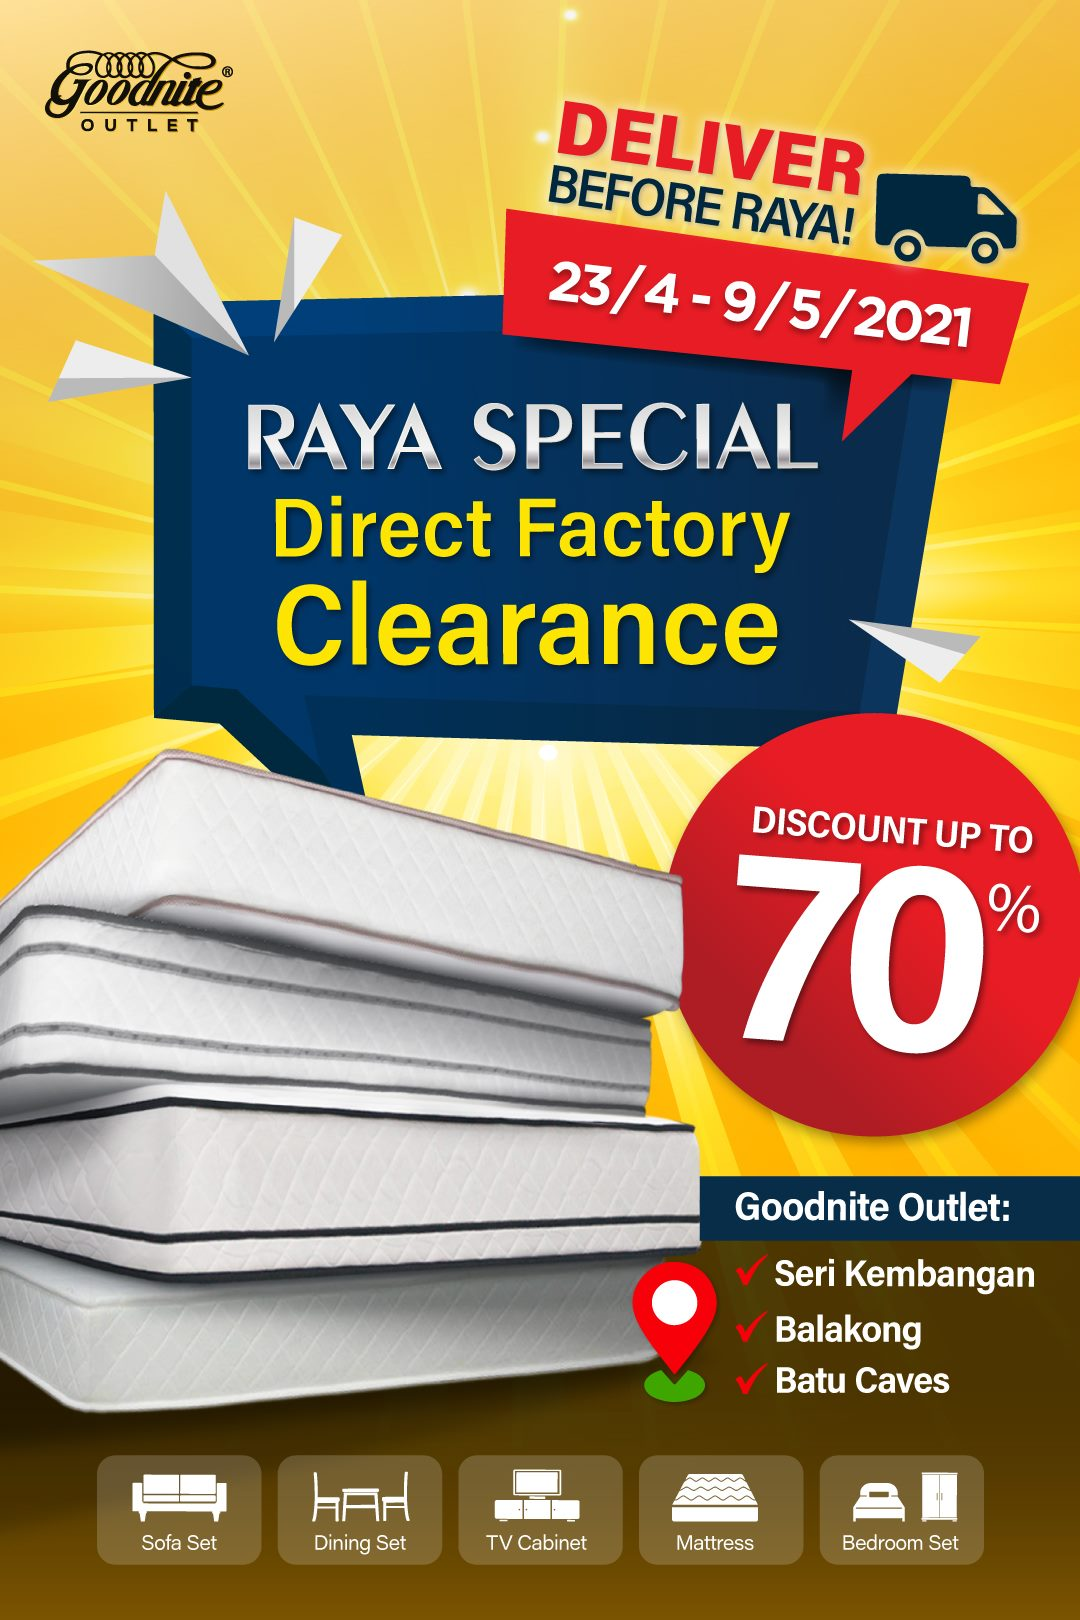 Goodnite-Raya-Clearance-Sale-350x525 - Beddings Furniture Home & Garden & Tools Home Decor Selangor Warehouse Sale & Clearance in Malaysia